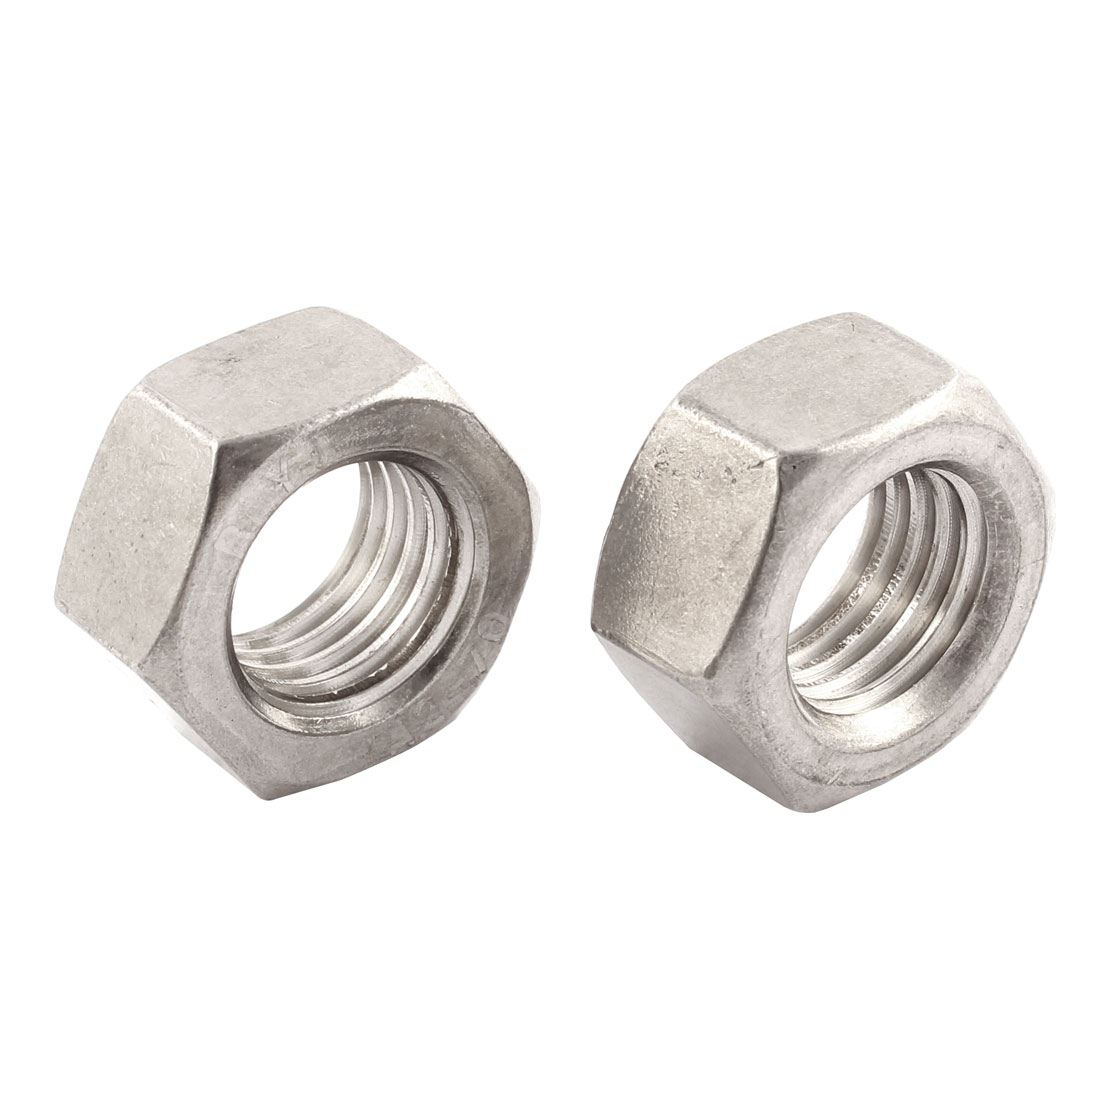 Metric M20x2.5mm Stainless Steel Finished Hexgon Hex Nut Silver Tone 2pcs